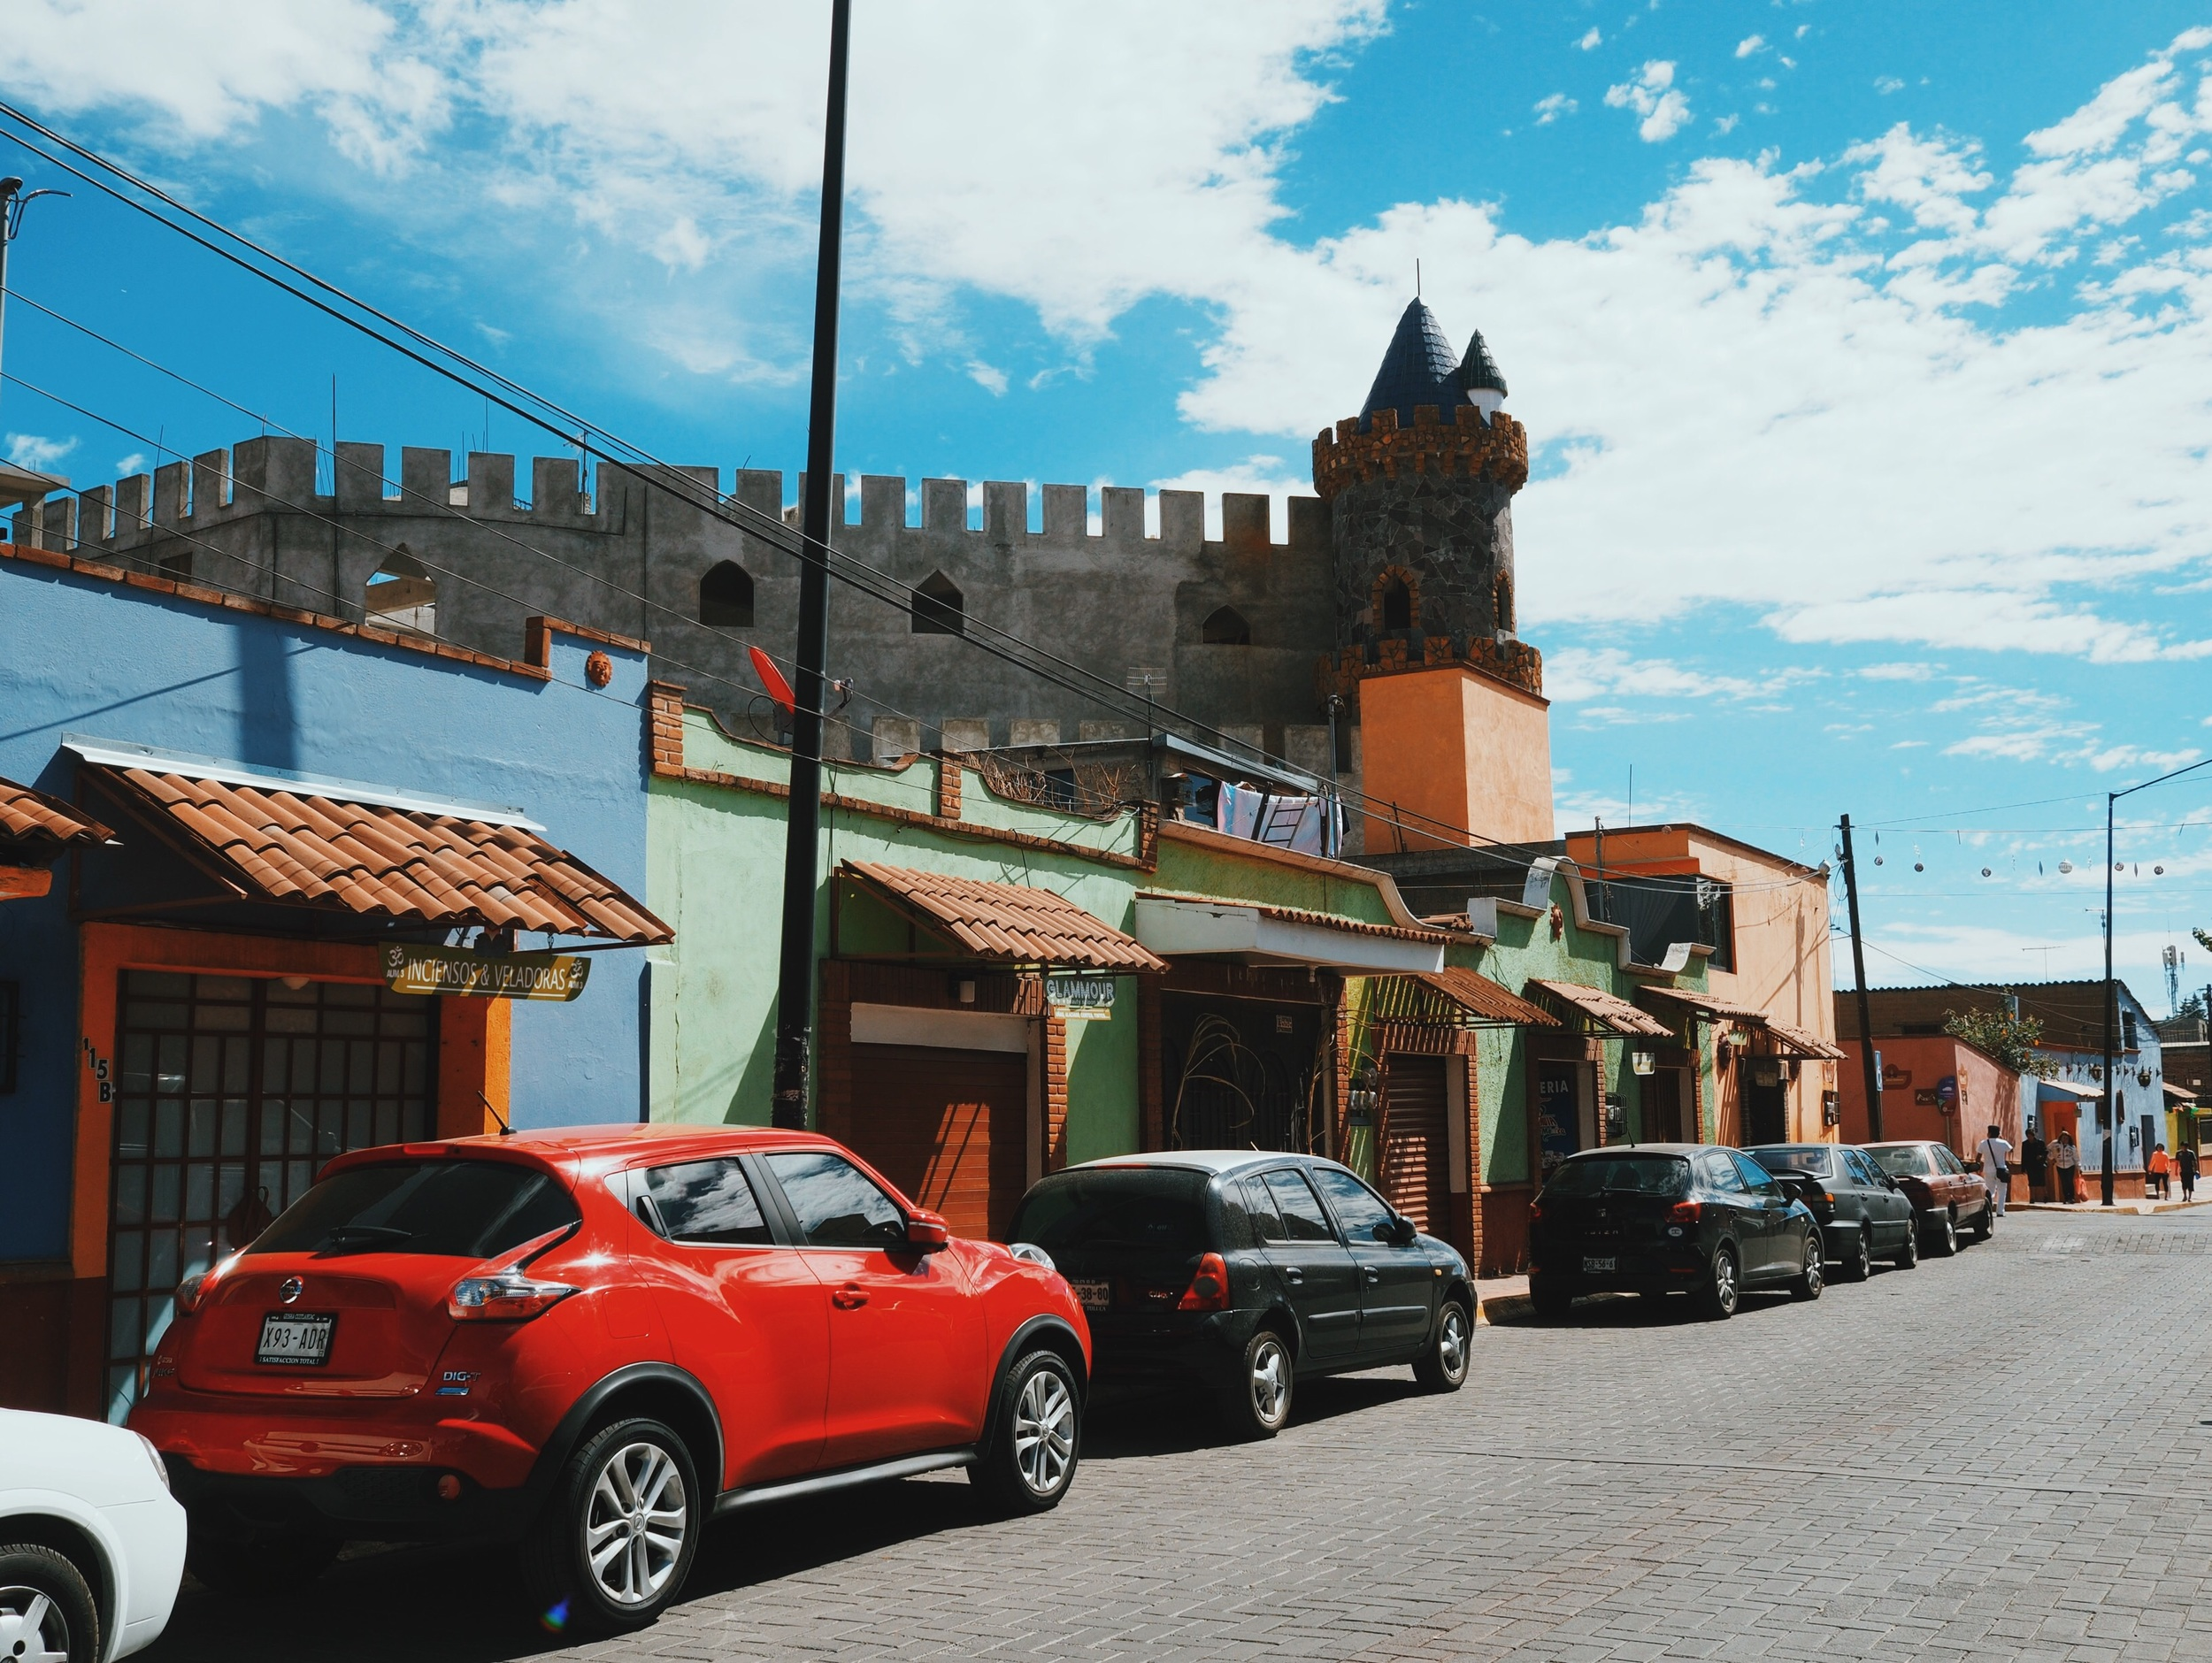 Metepec – colorful tiendas and... castles?